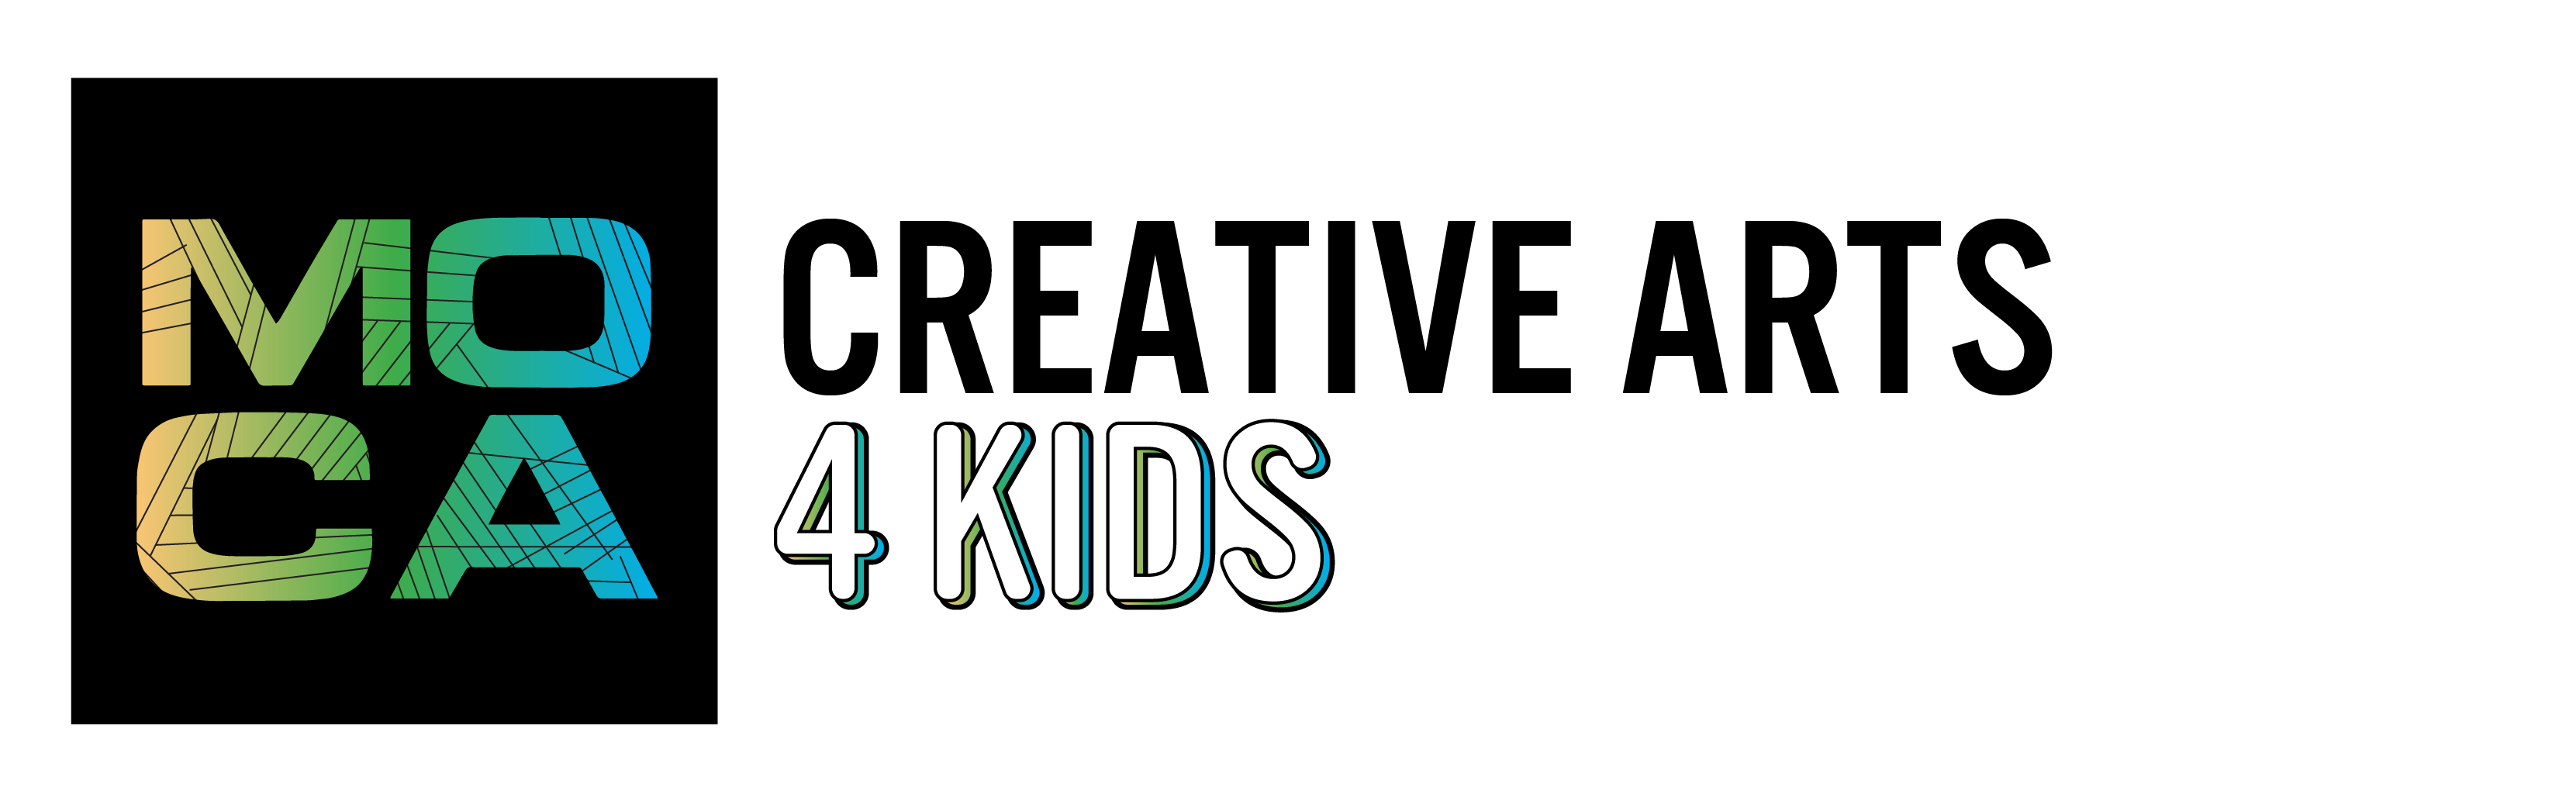 Creative Arts 4 Kids logo